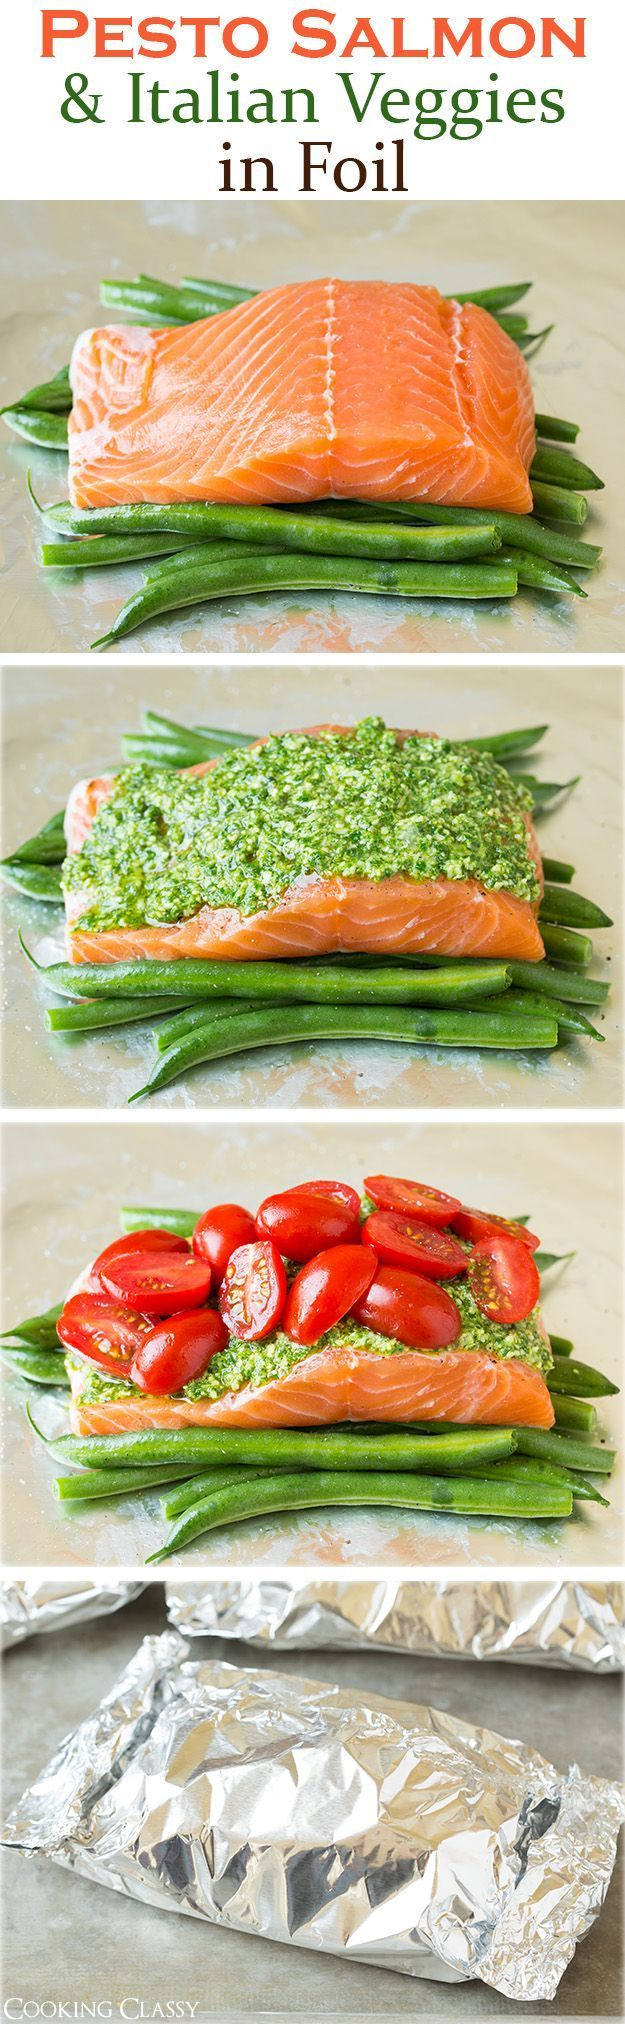 Pesto Salmon and Italian Veggies in Foil Recipe - this is an easy, flavorful dinner that is sure to please! So delicious!